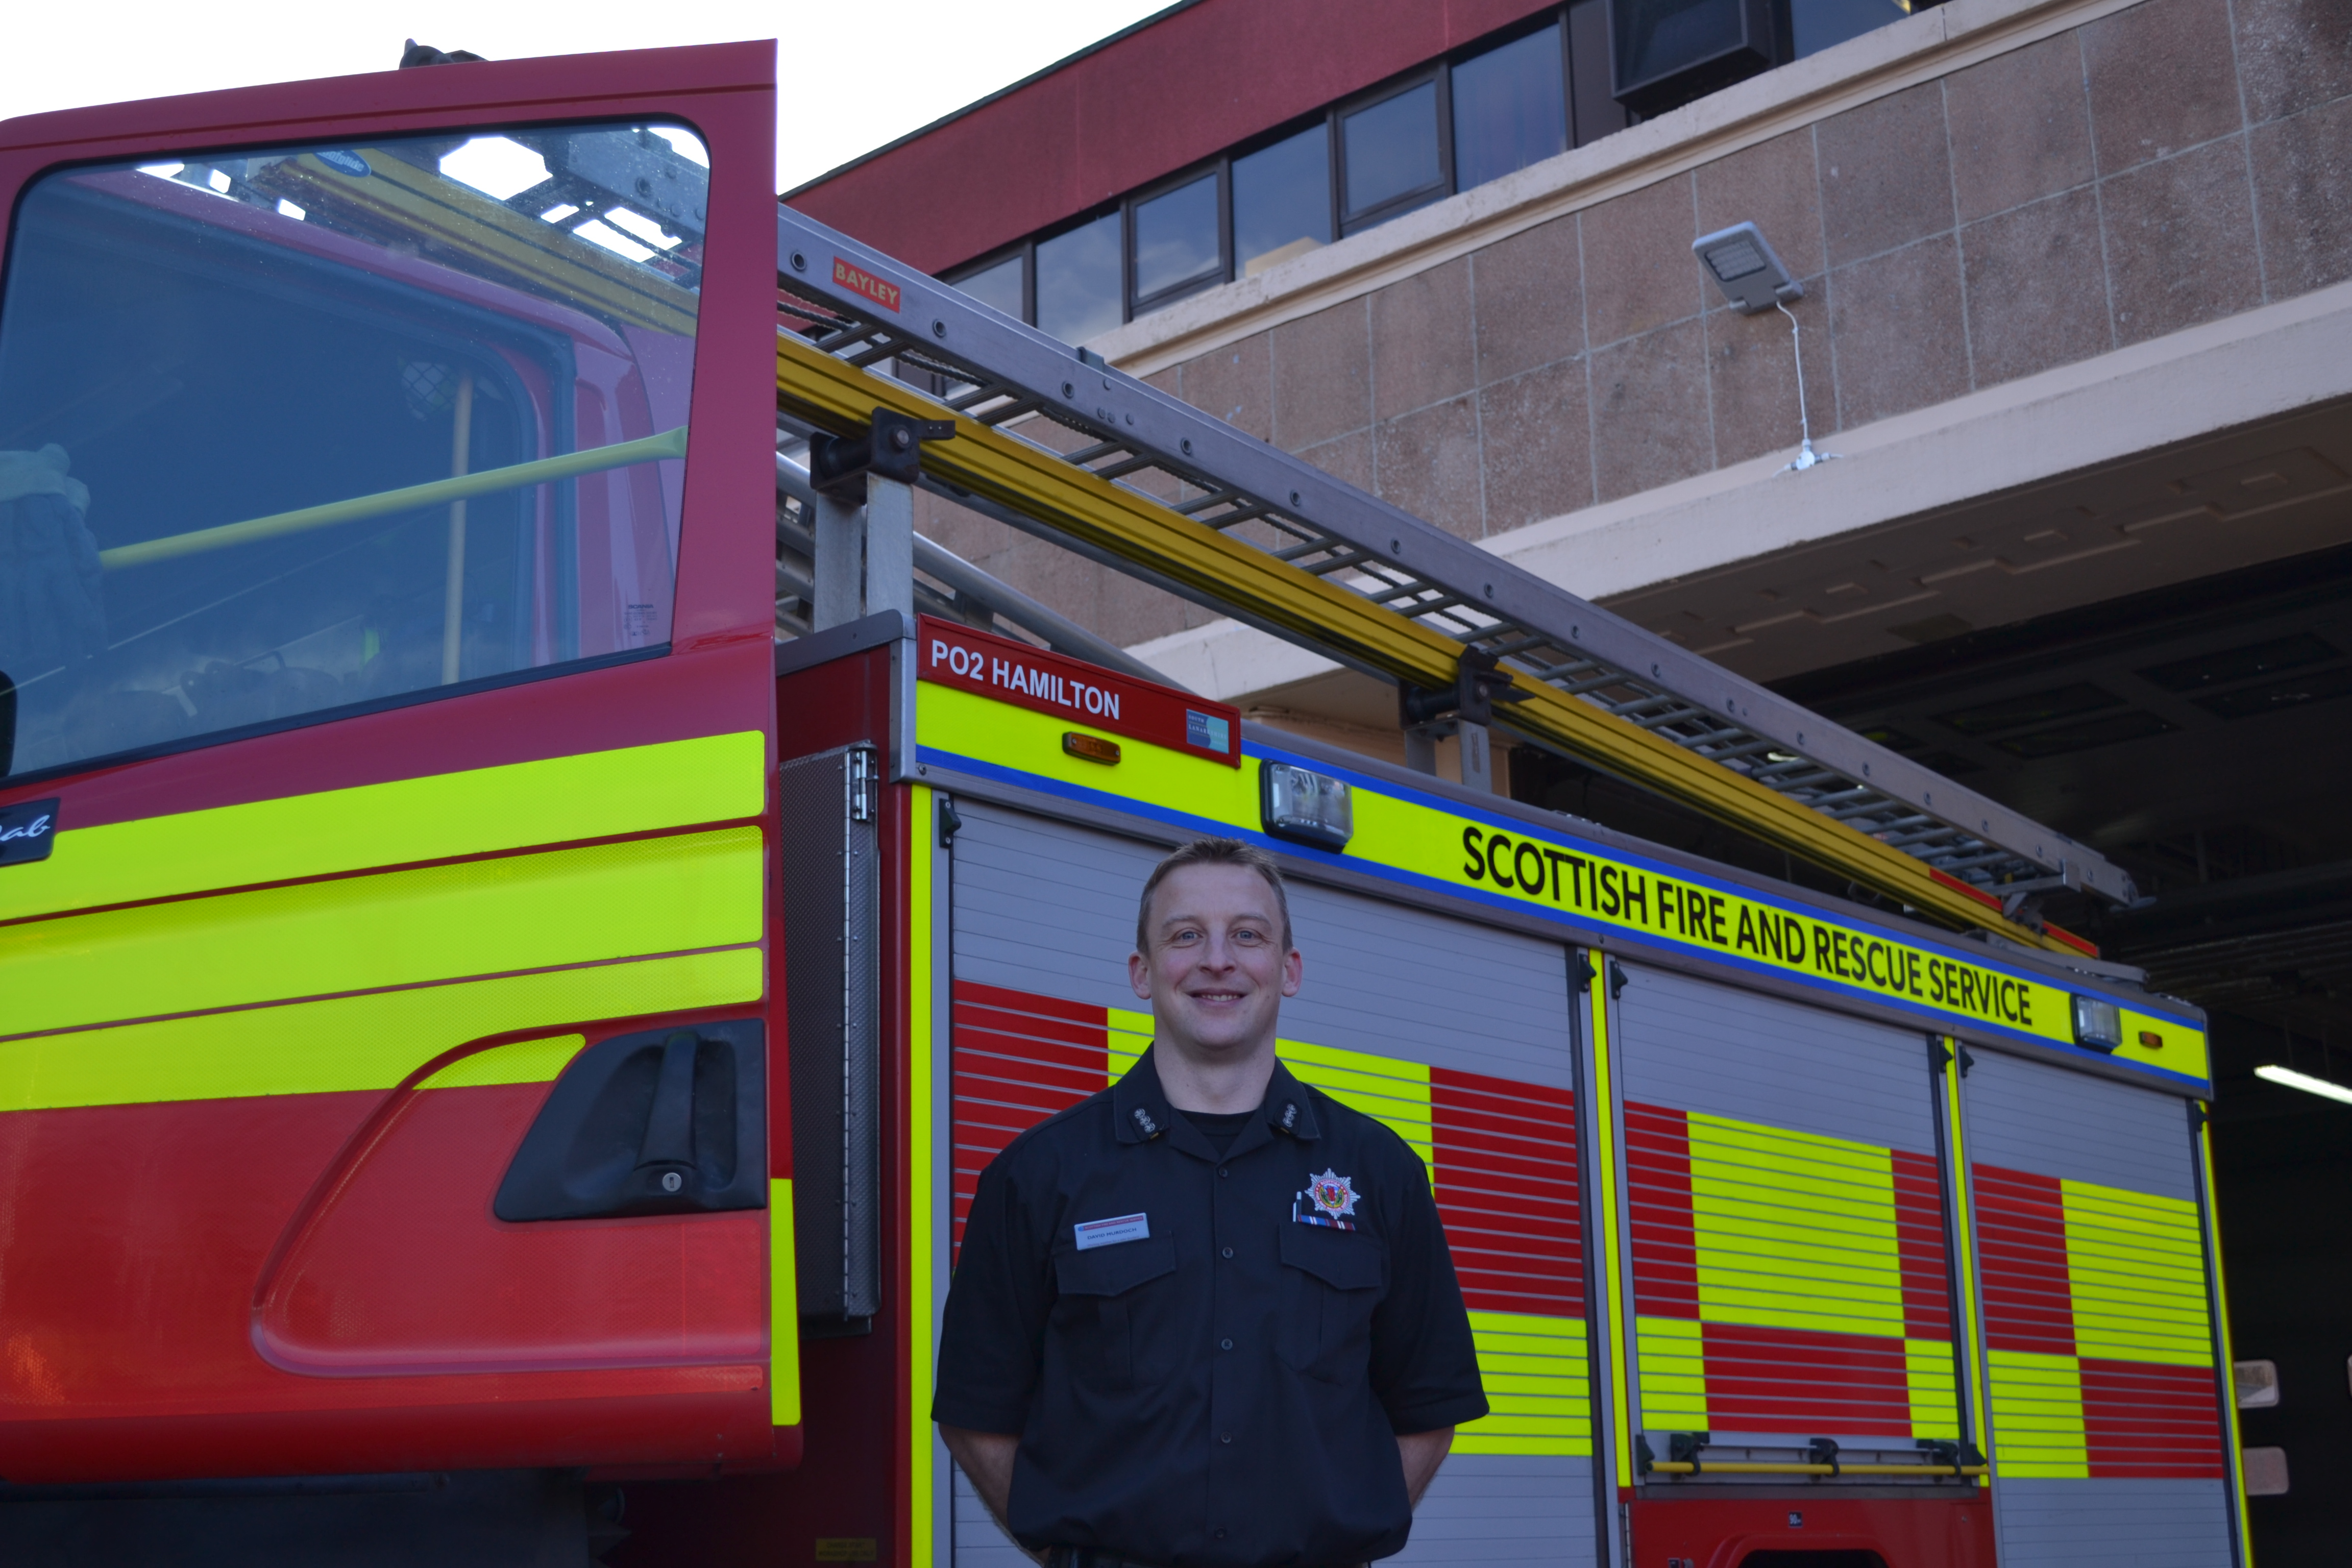 Lanark honour for SFRS officer